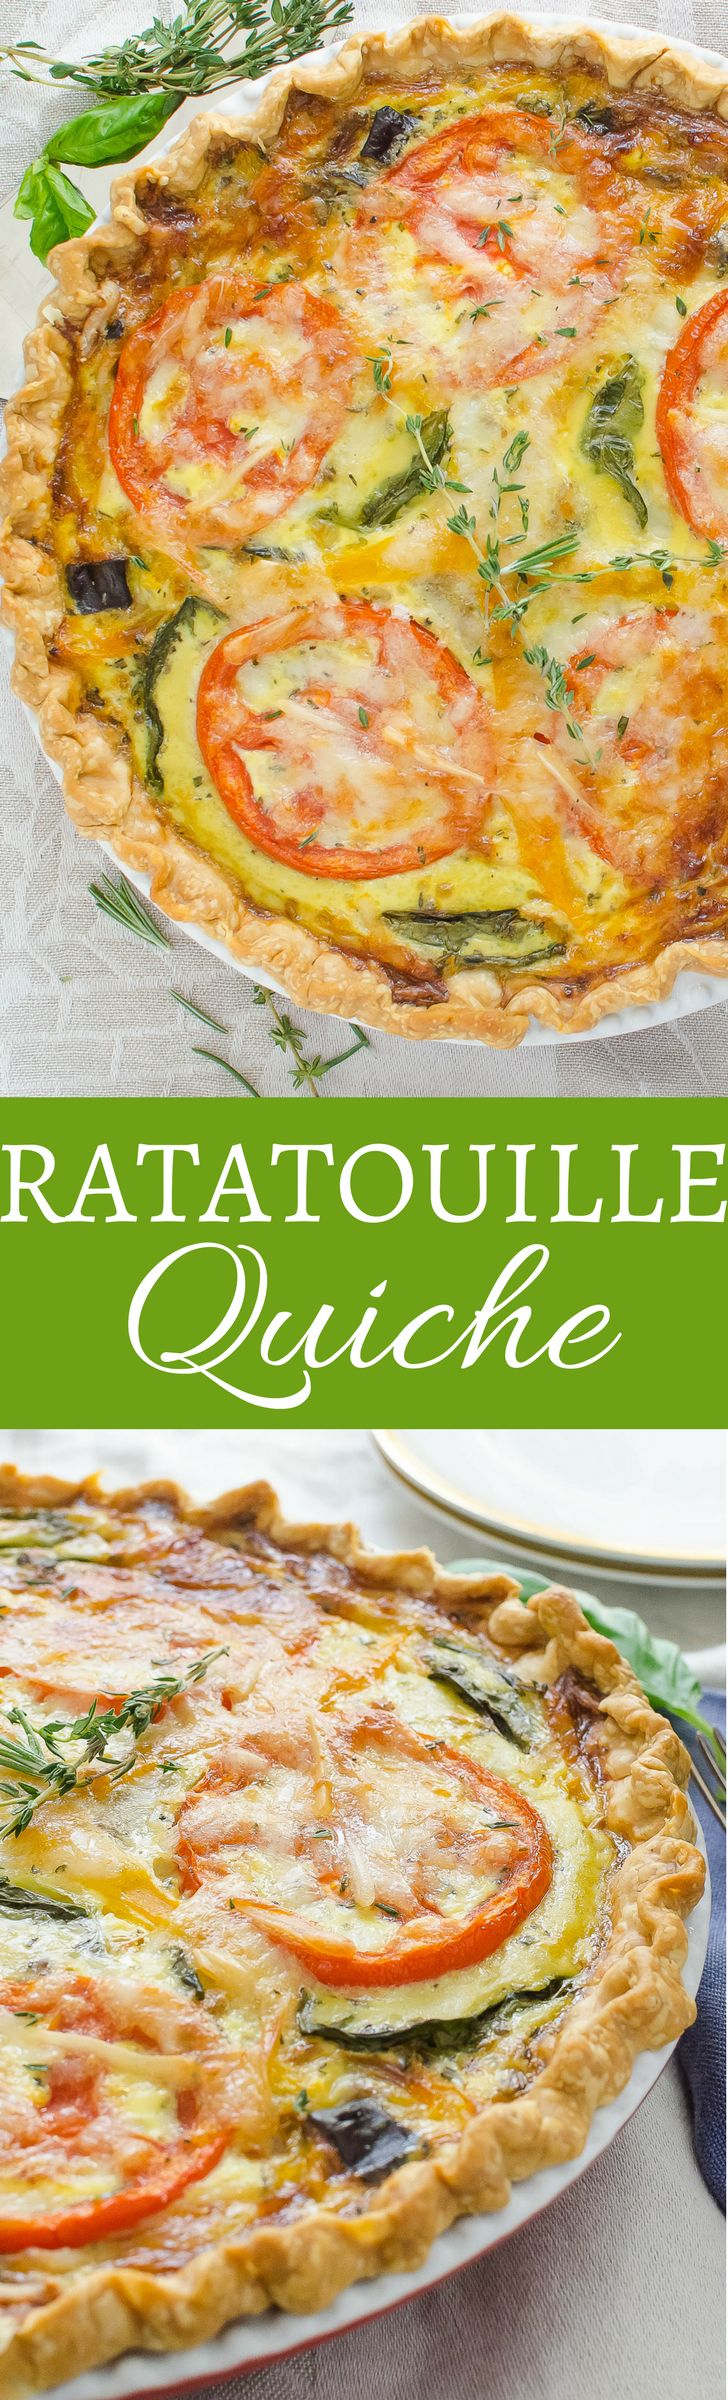 This simple vegetarian recipe for ratatouille quiche is loaded with eggplant, peppers, tomatoes and herbs all in a flaky crust. Perfect for brunch!